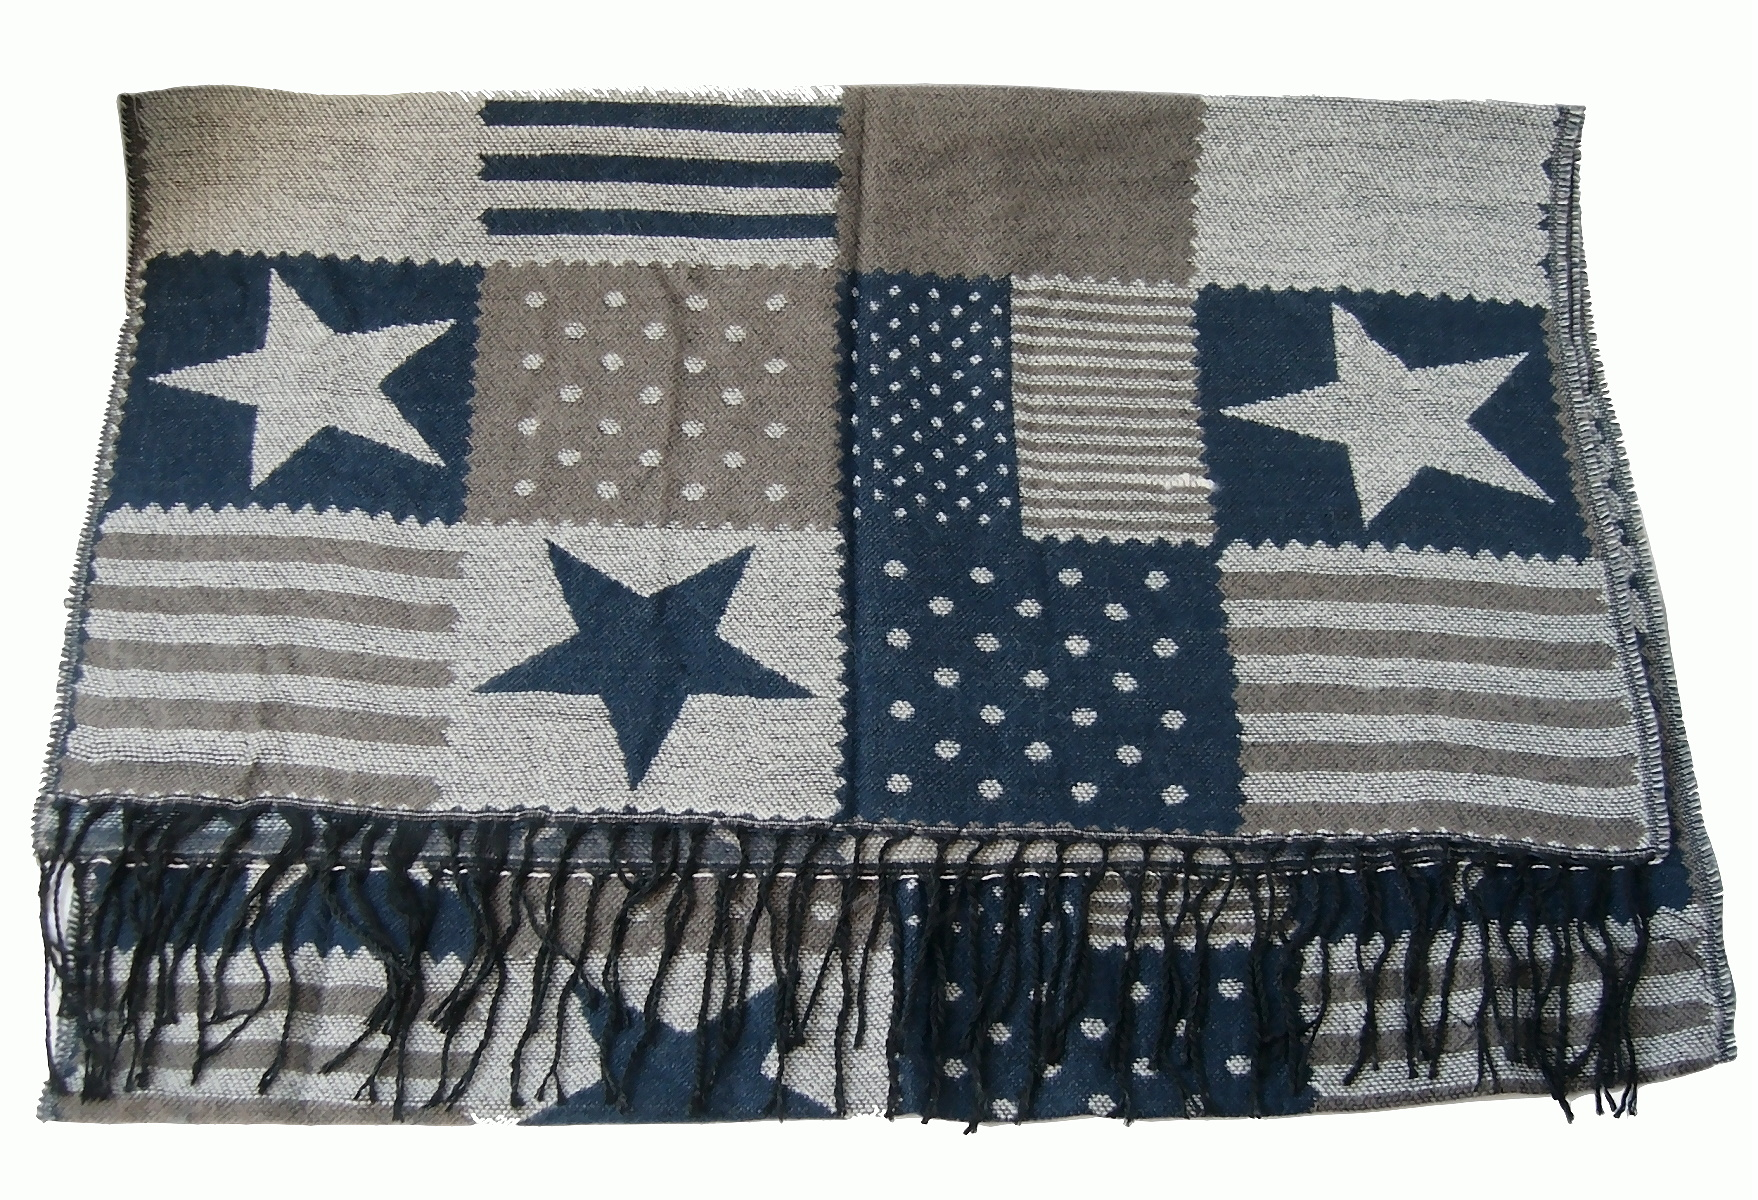 Schal Winterschal Stars and Stripes Sterne 180cm dunkelblau grau T2850